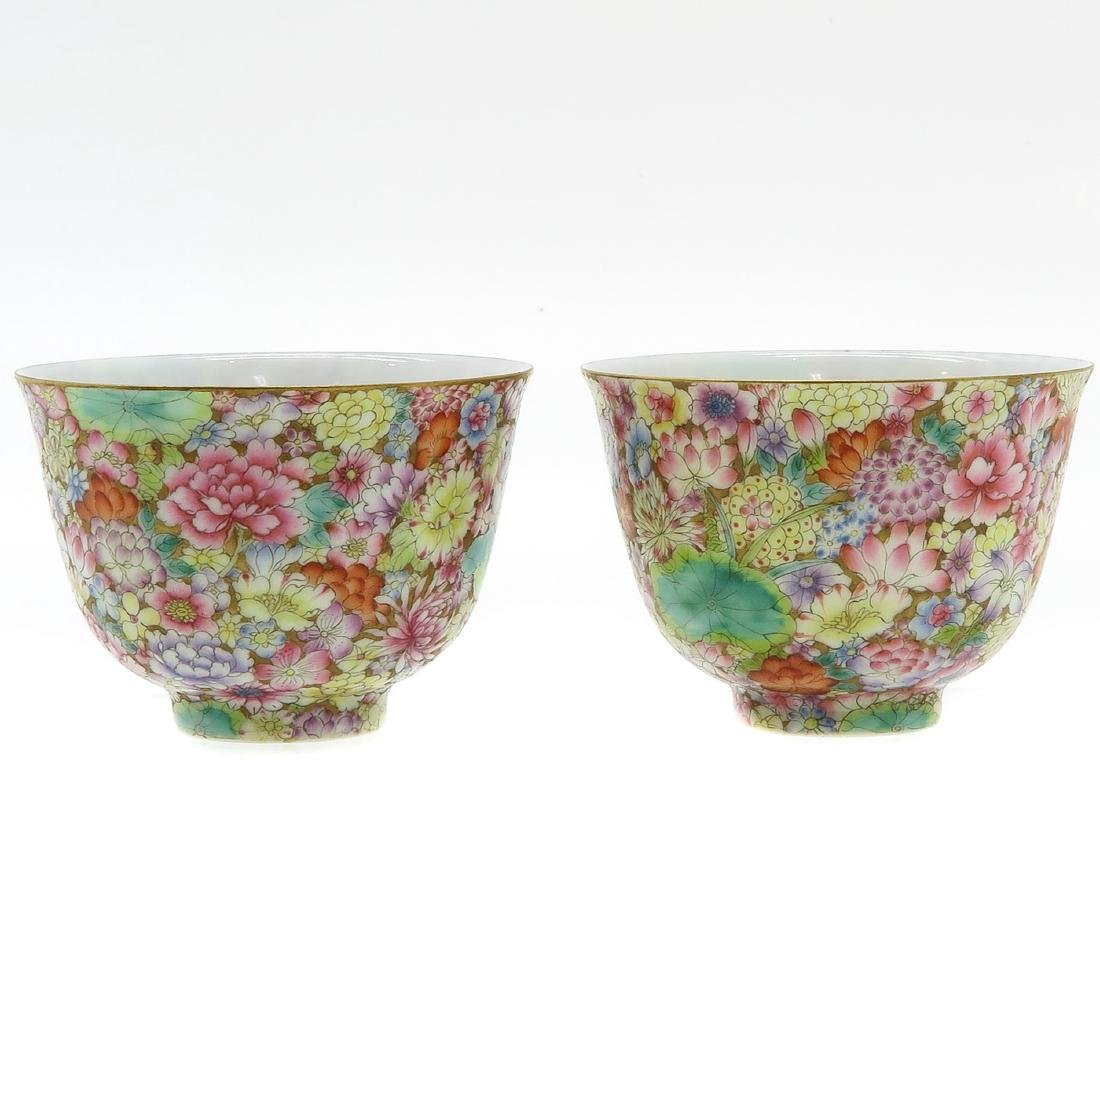 Lot of 2 Cups - 3